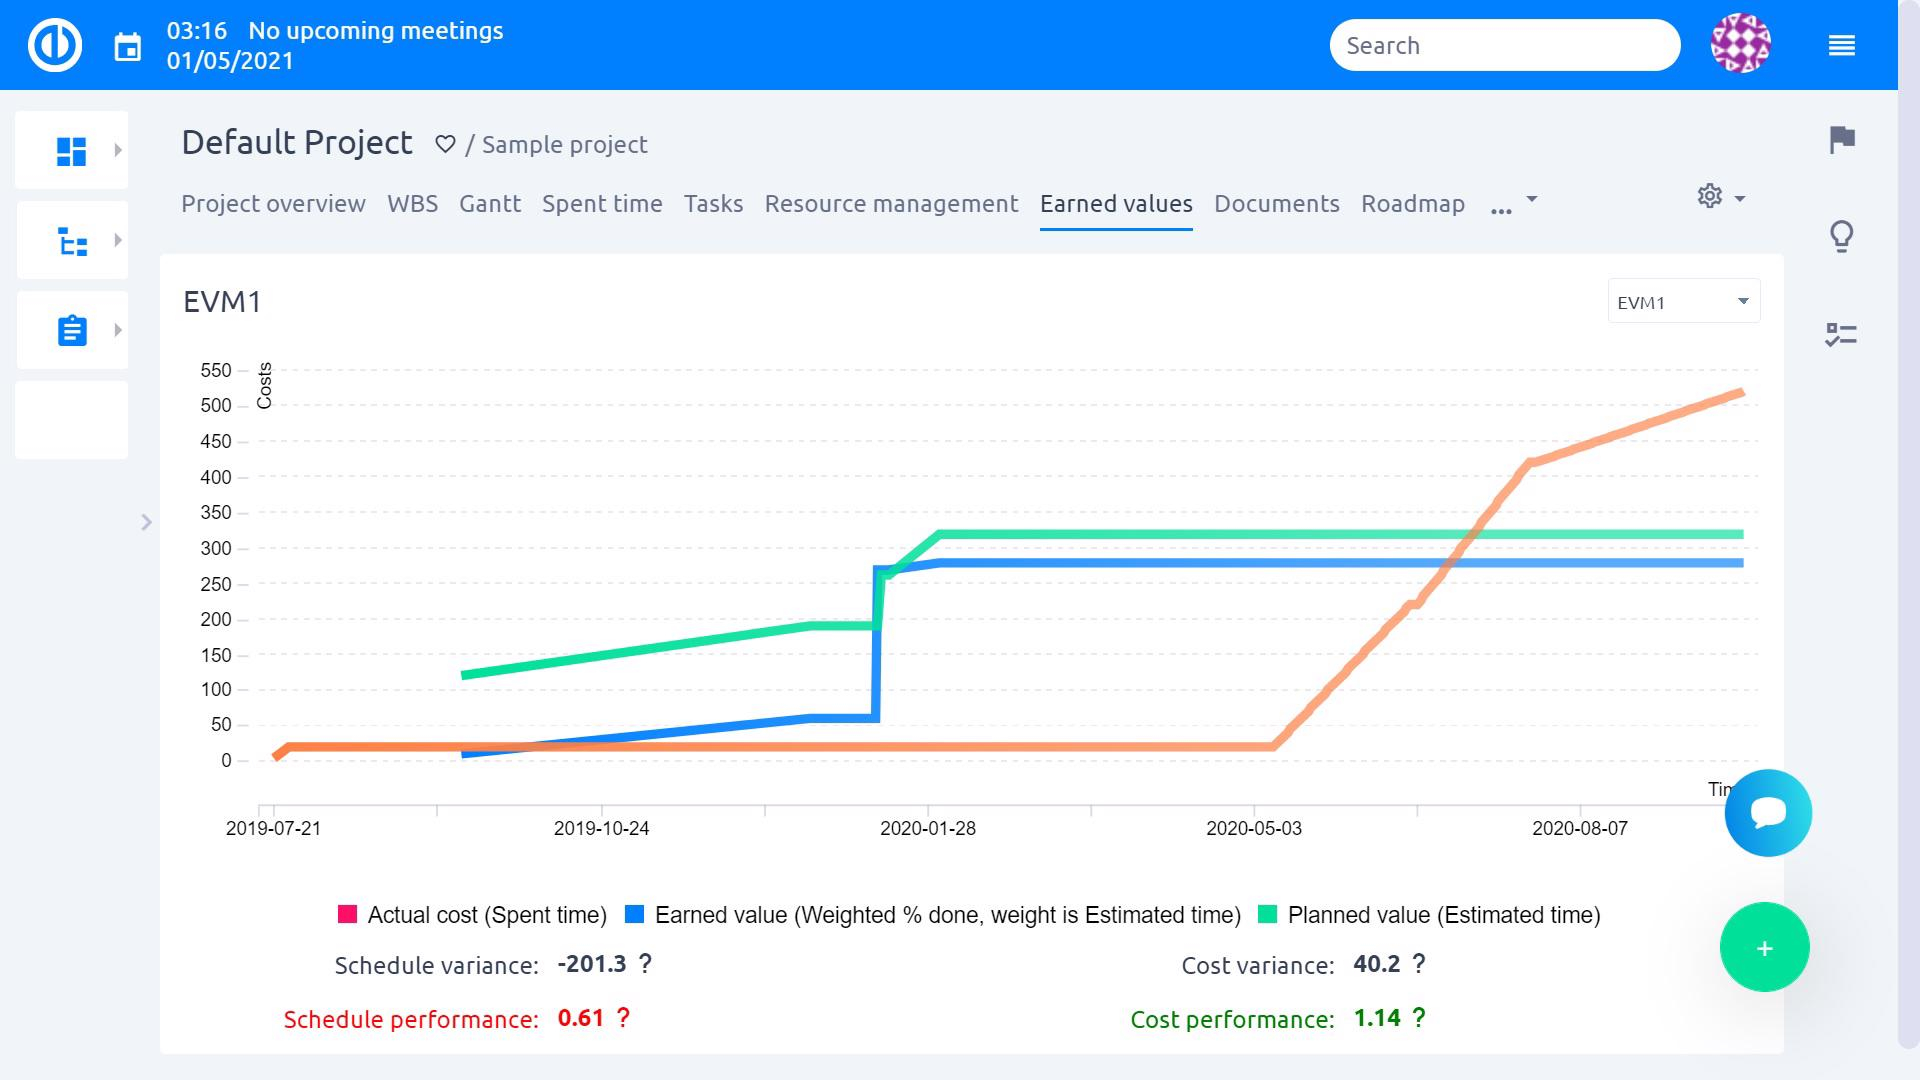 Easy Project – Earned Value Management